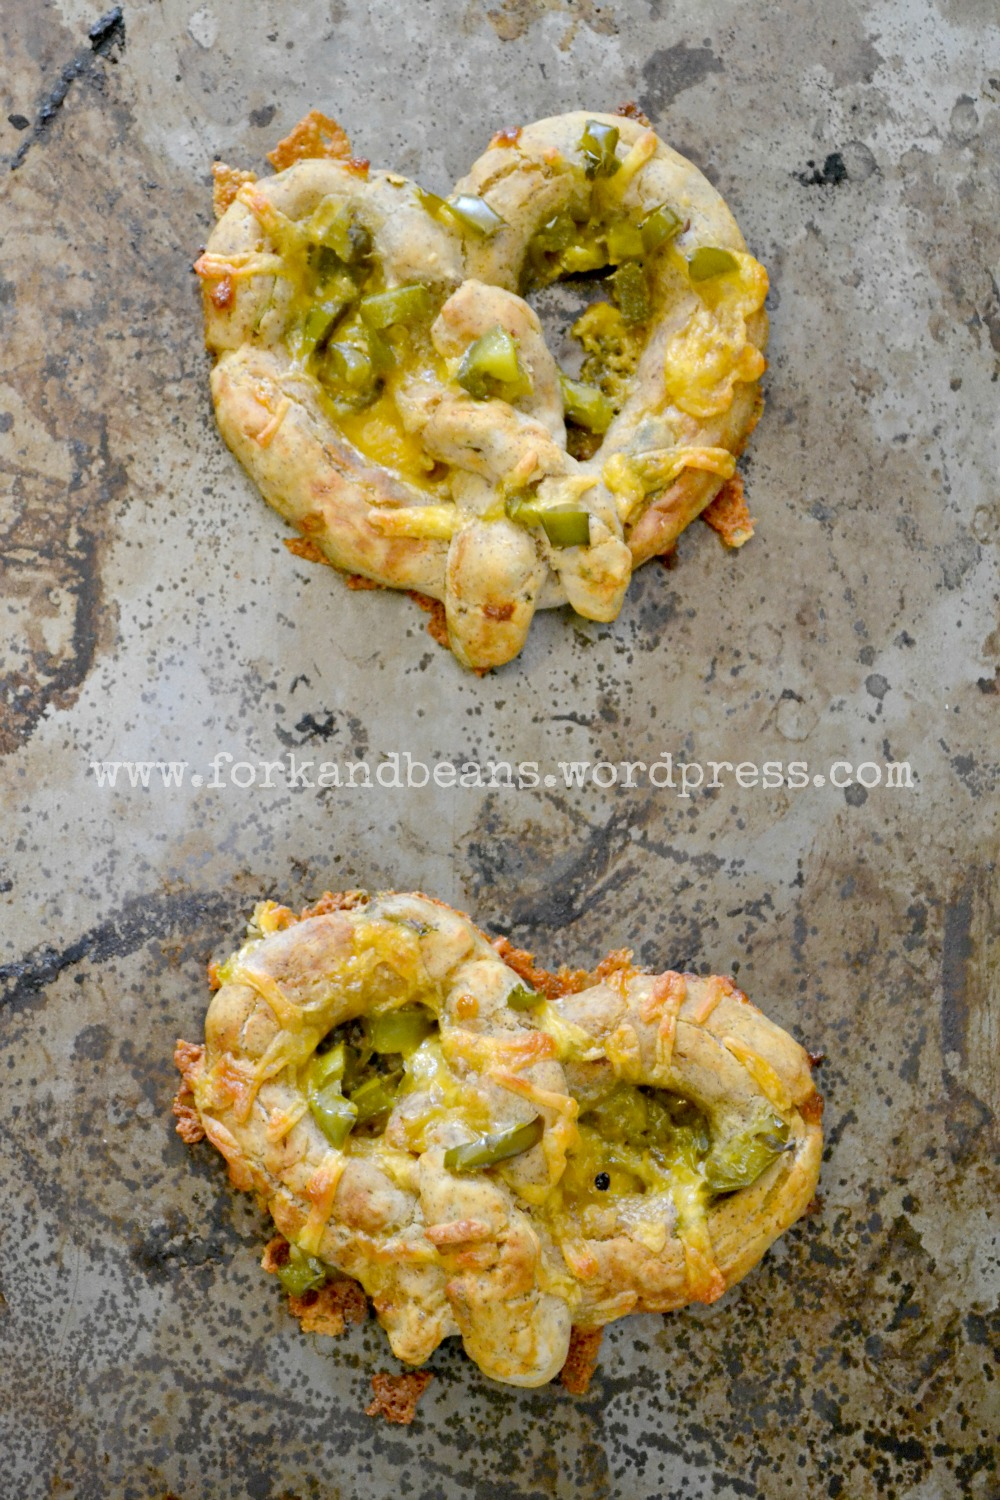 Jalapeno and Vegan Cheeze soft pretzels (gluten free)